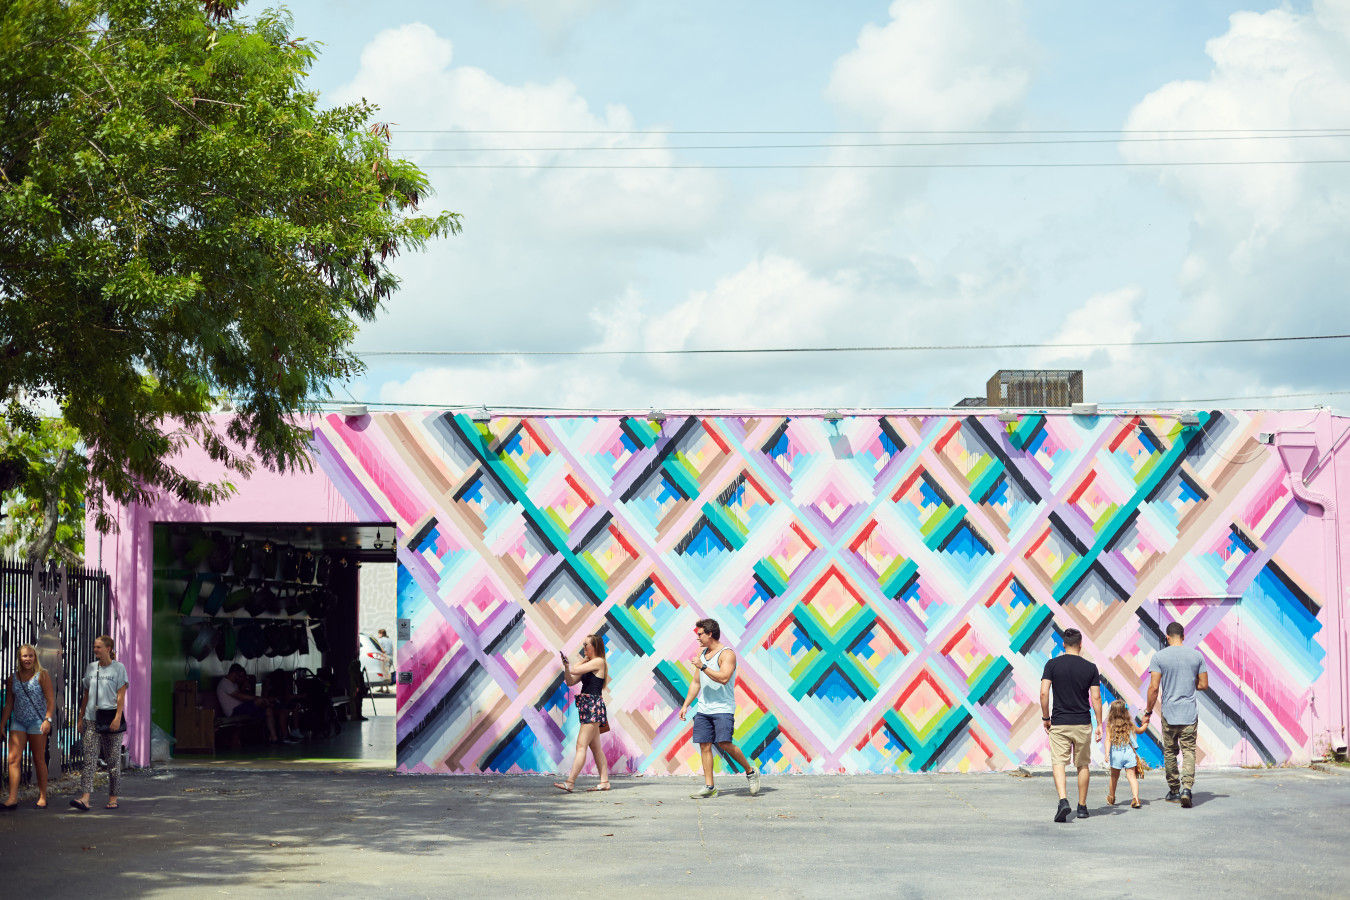 Wynwood street art in the Wynwood Walls